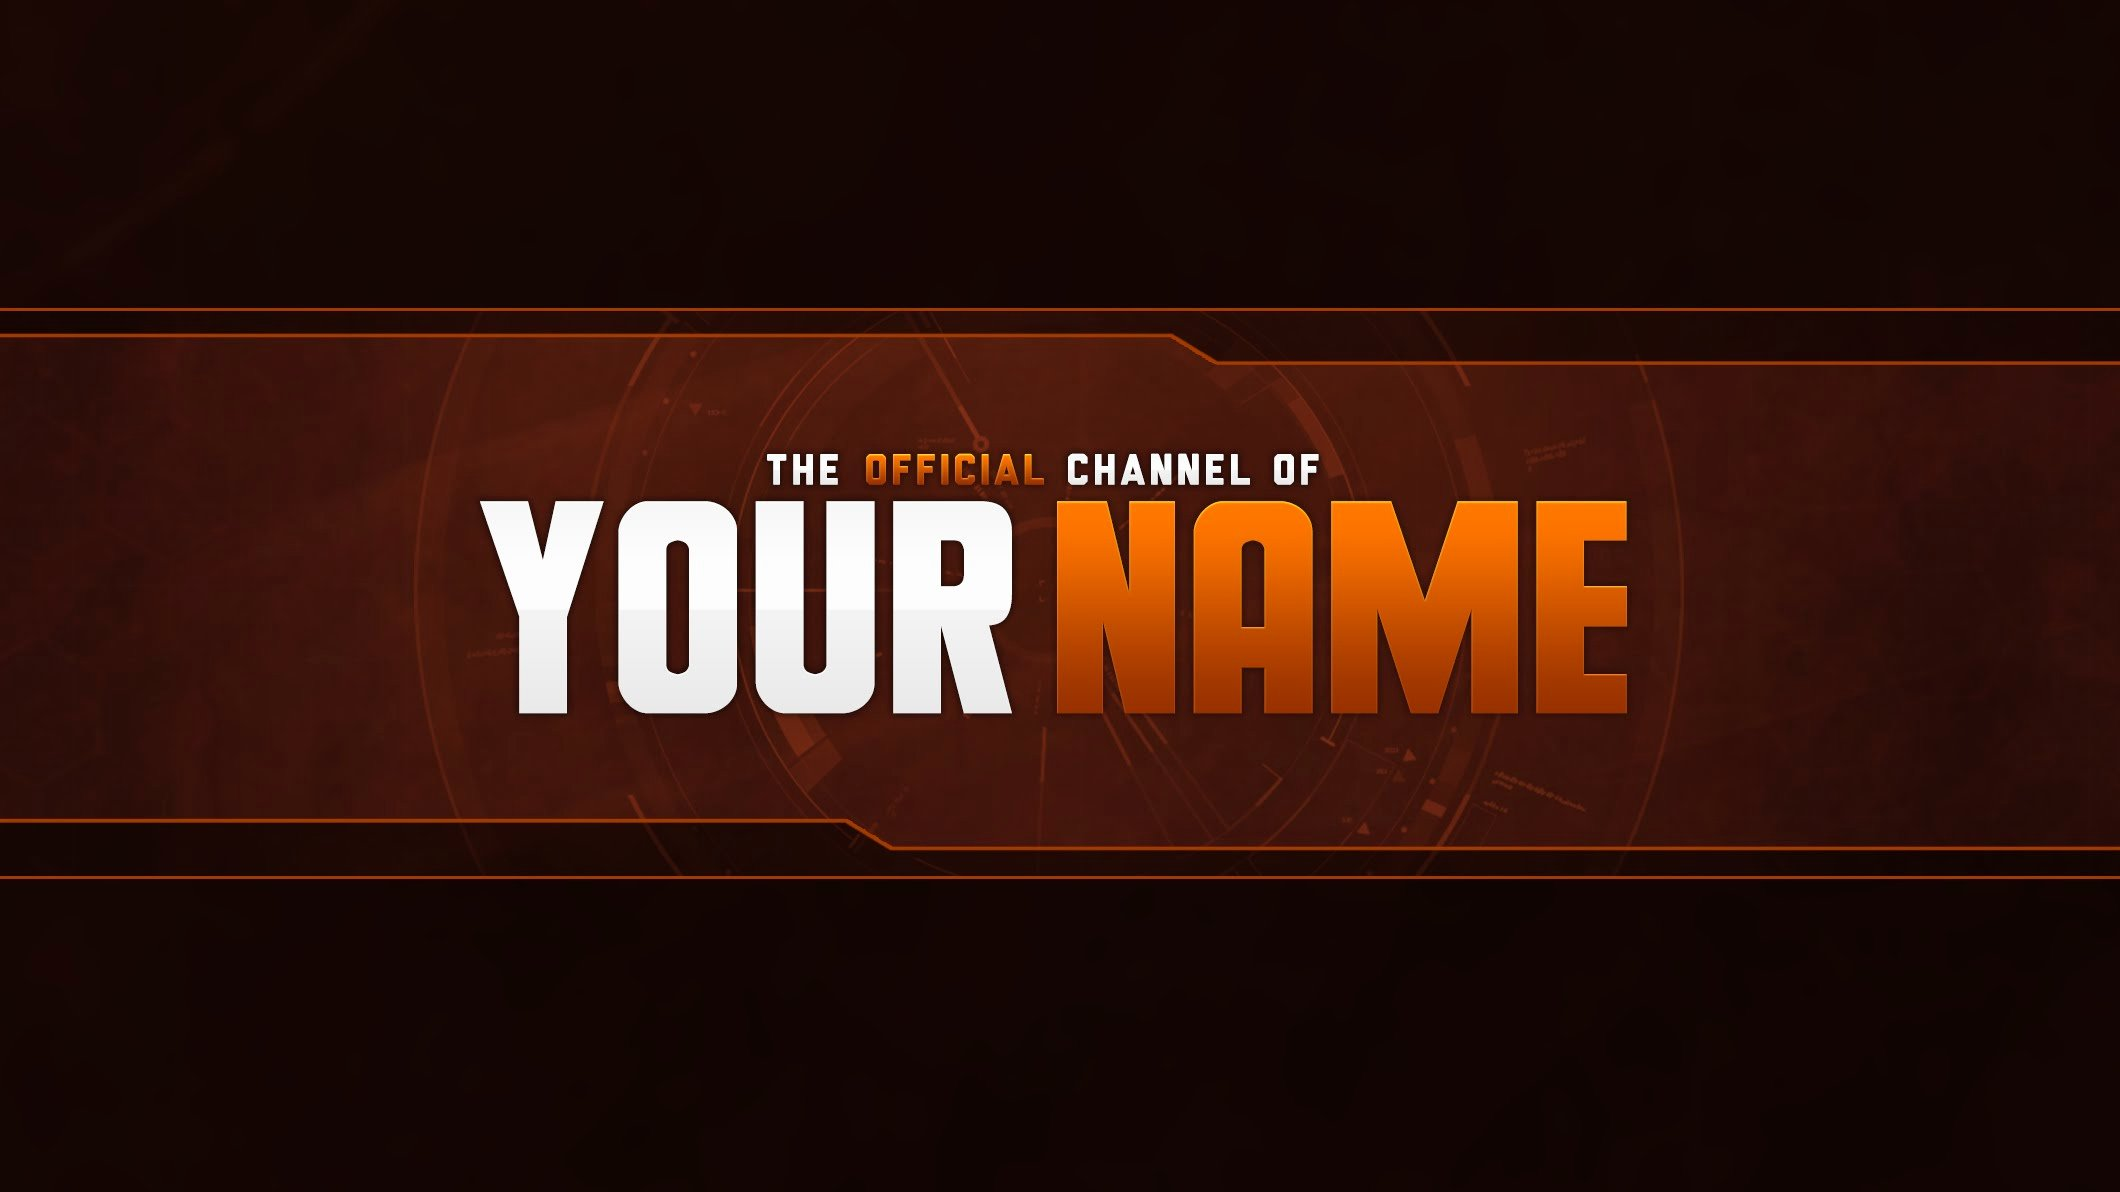 Youtube Banner Template Photoshop Awesome 13 Template Psd Channel Art